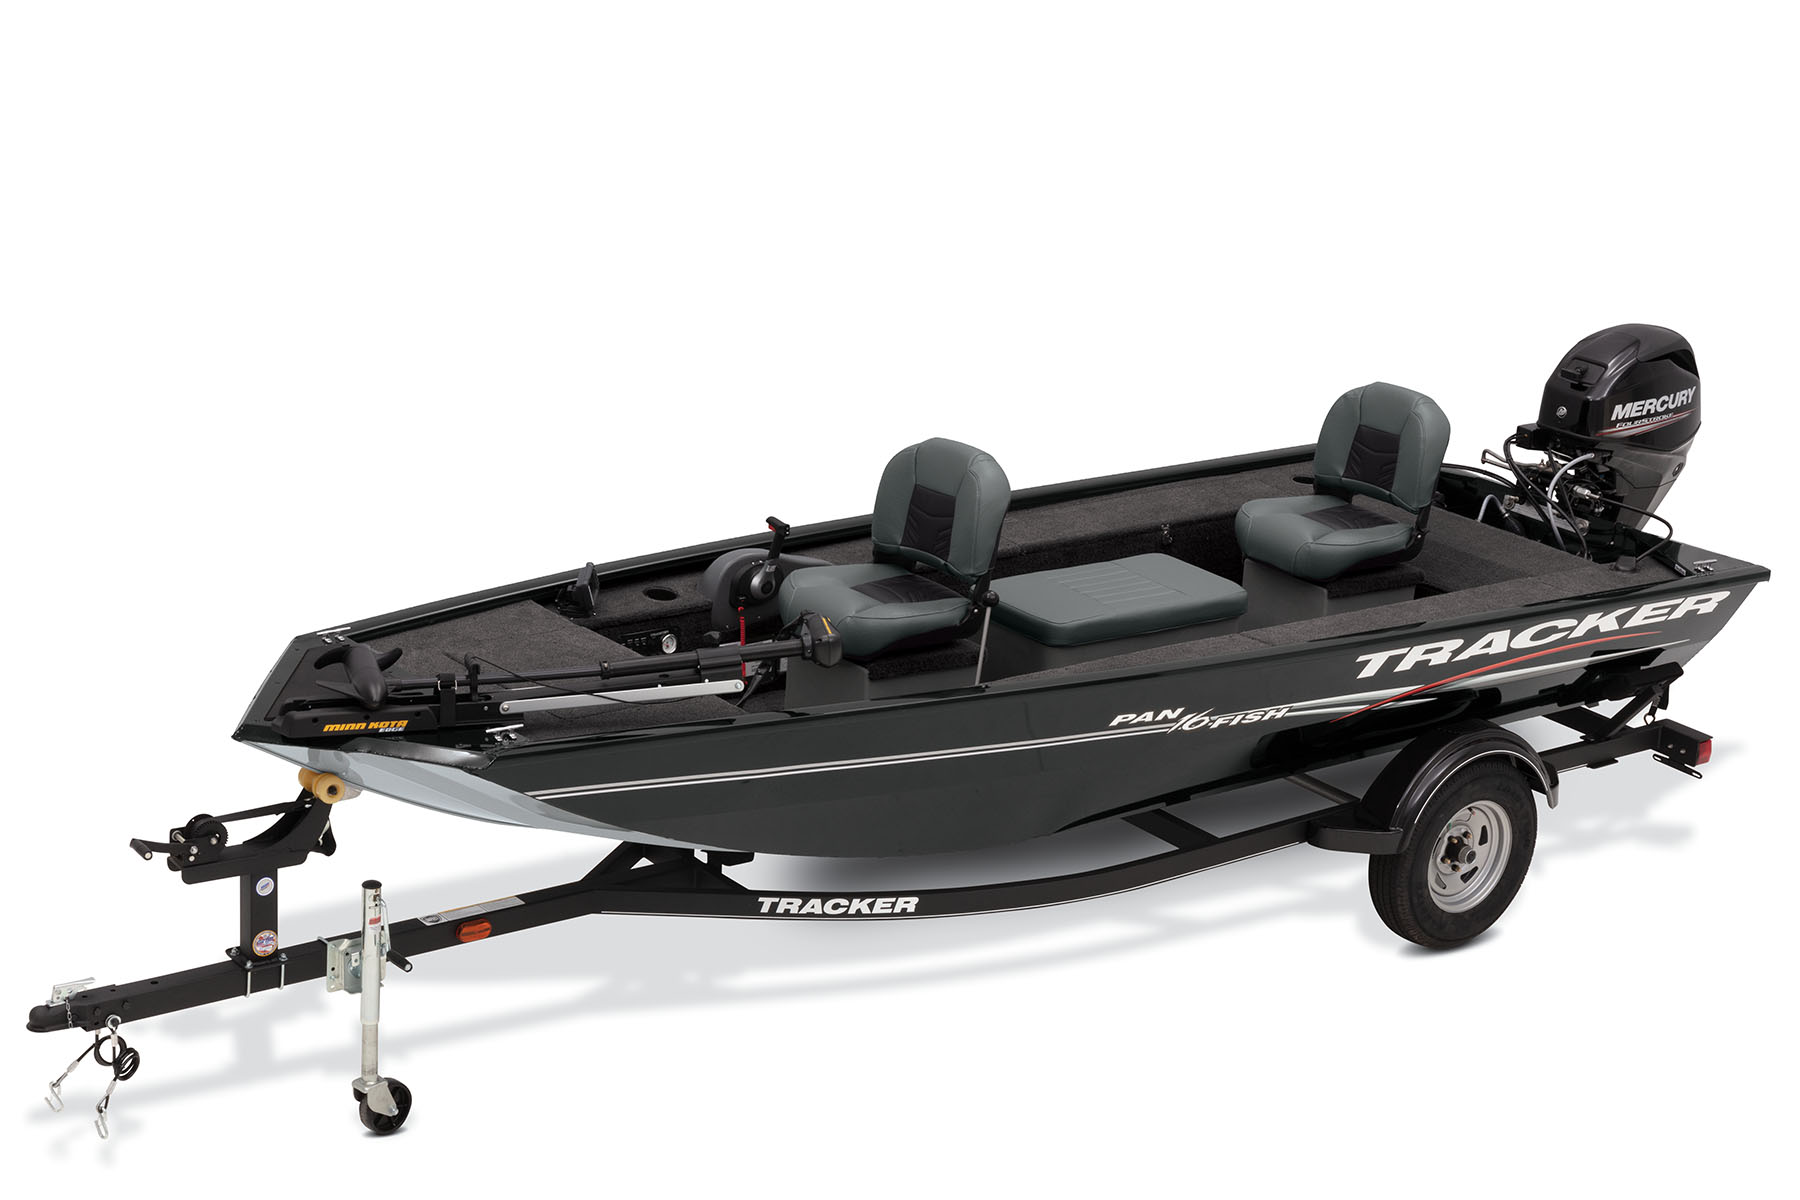 2020 PANFISH 16 - TRACKER Mod V Panfish Boat | Bass Tracker Pro 16 Wiring Diagram |  | Tracker Boats